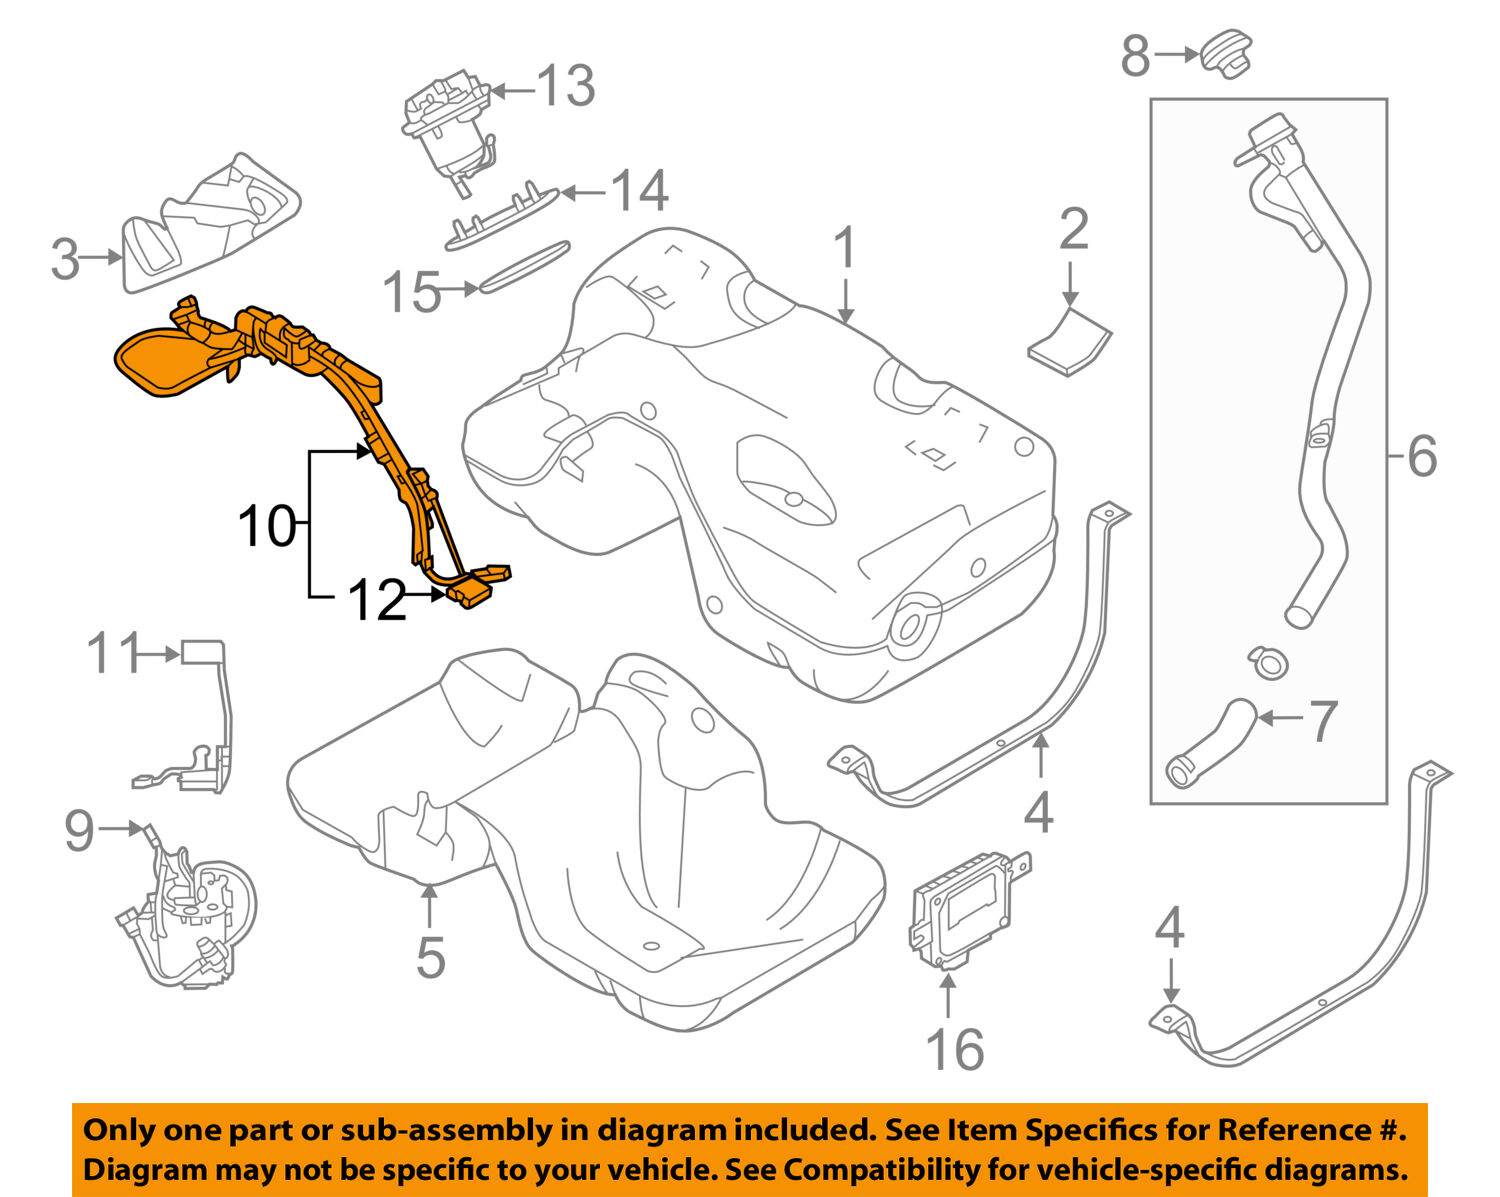 LAND ROVER OEM 12-17 Range Rover Evoque-Fuel Pump LR057235 1 of 4Only 0  available See More